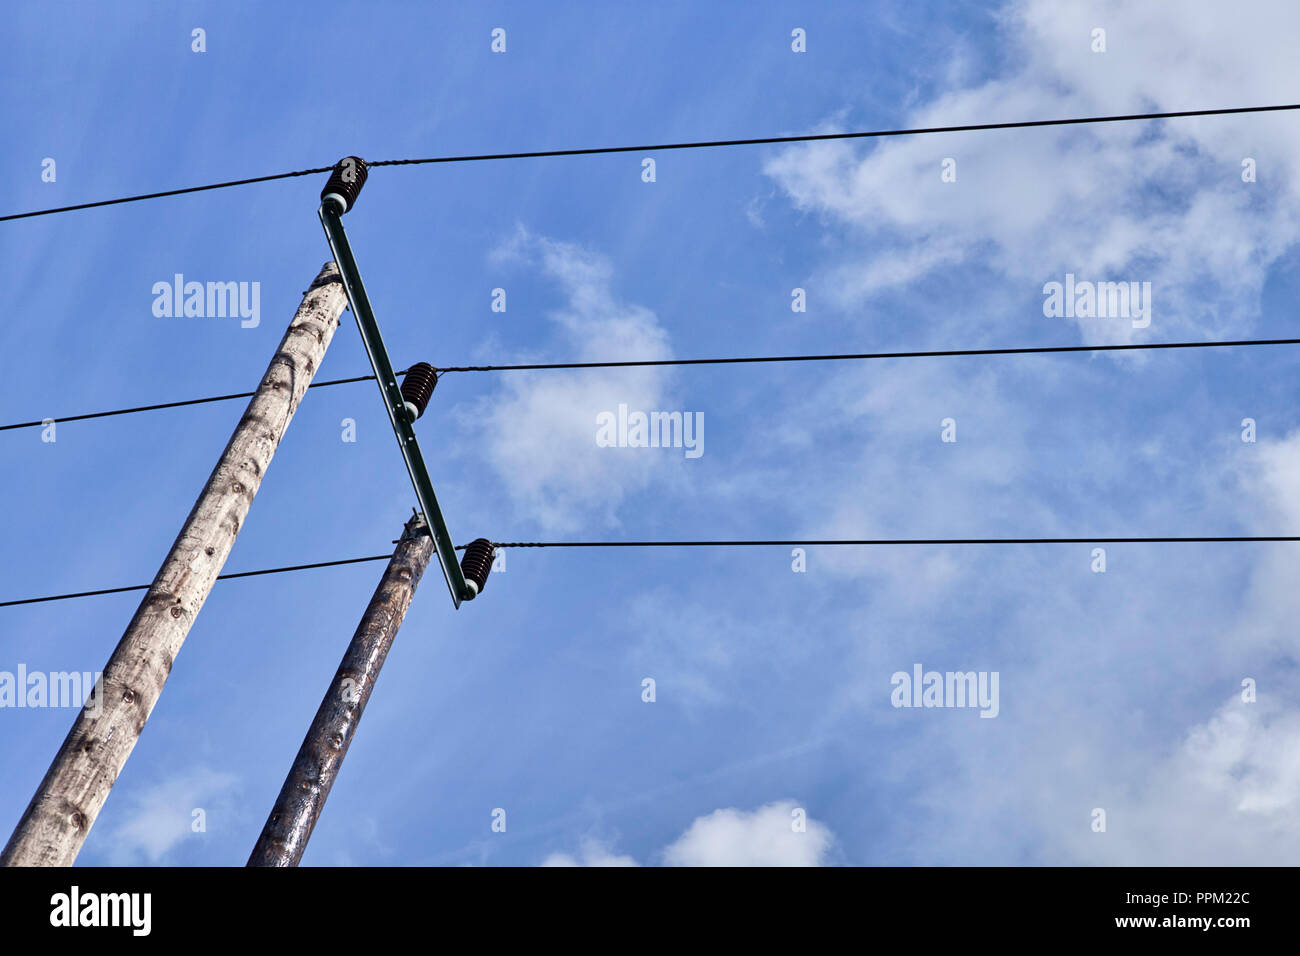 Looking up at electricity overhead cables on a pole - Stock Image